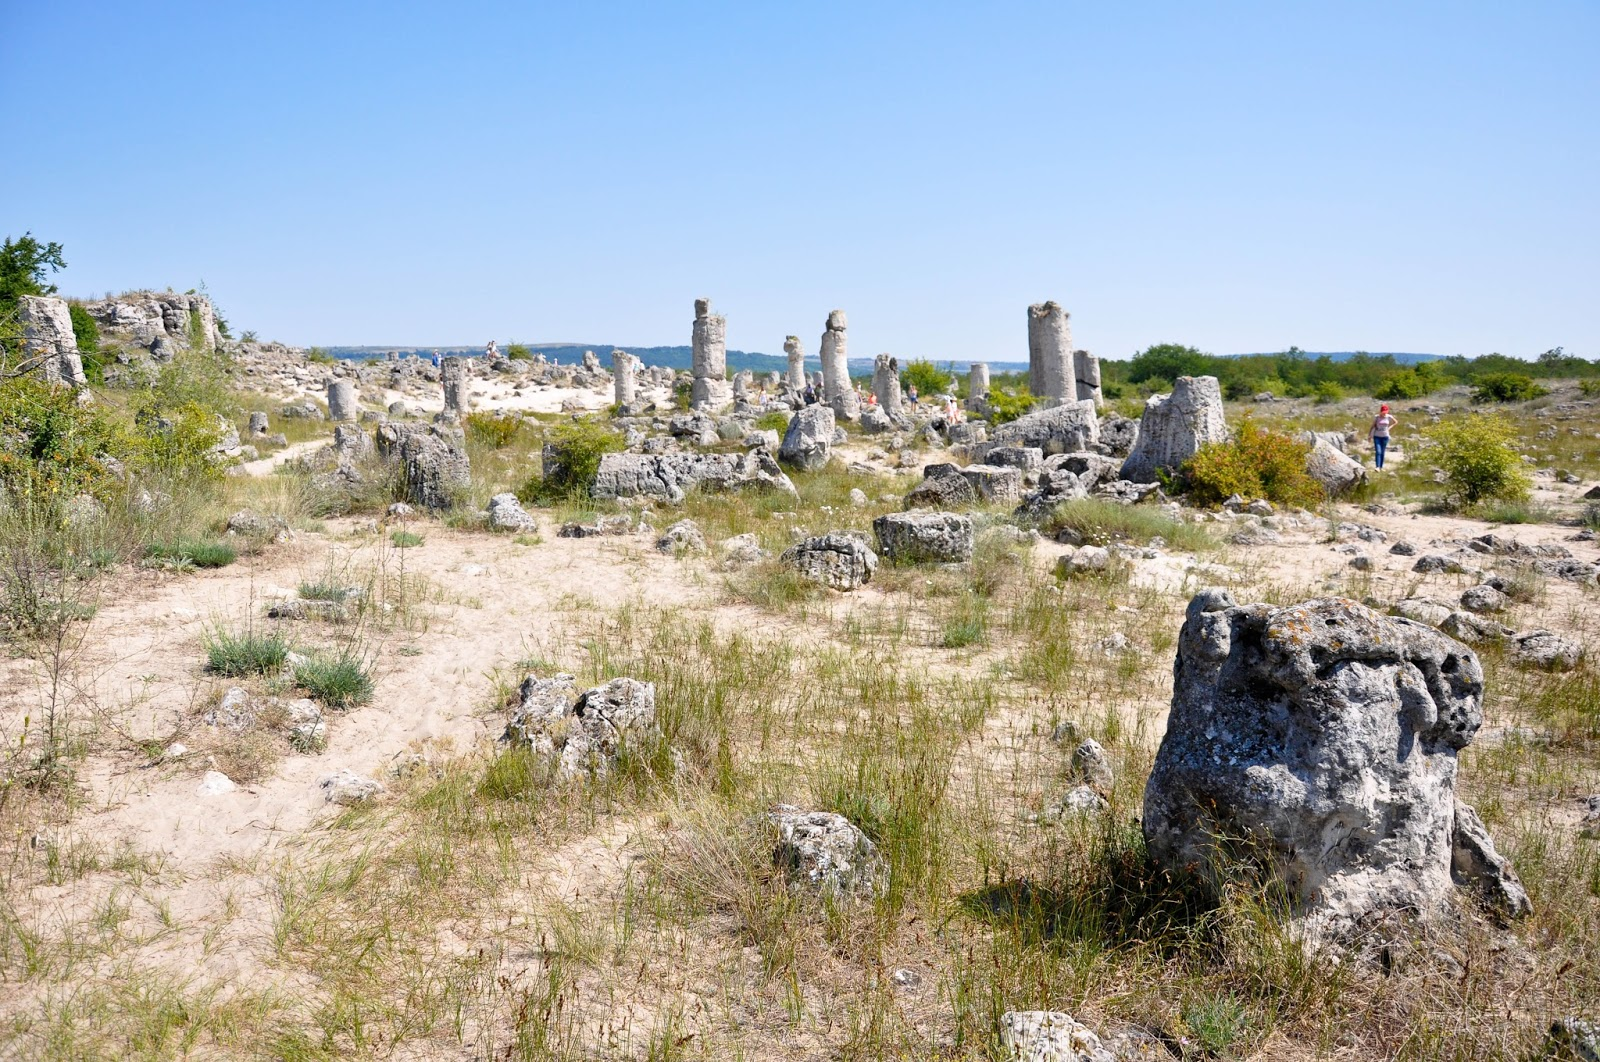 A general view, The Stone Forest, Varna, Bulgaria